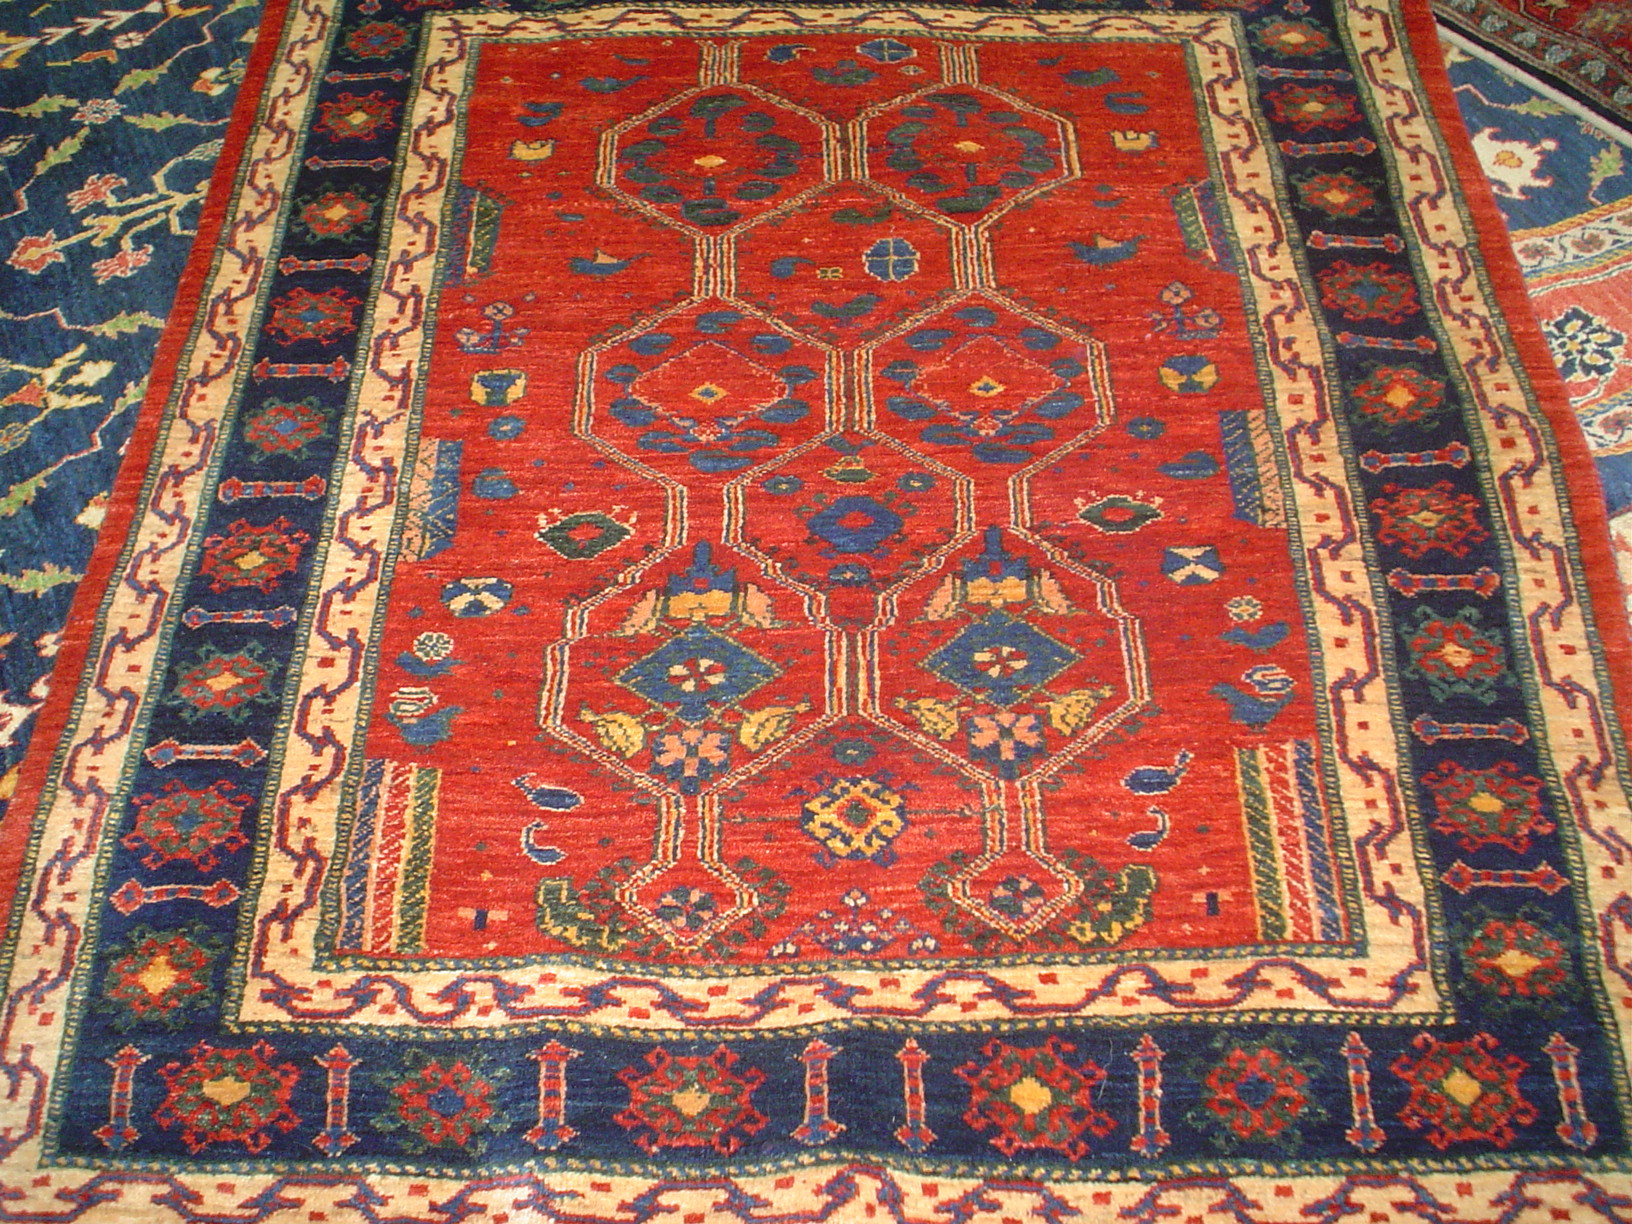 "#15) 4 x 5 Persian tribal rug. Khamsehbaf. Madder red with navy border. 3'11"" x 4'7"""